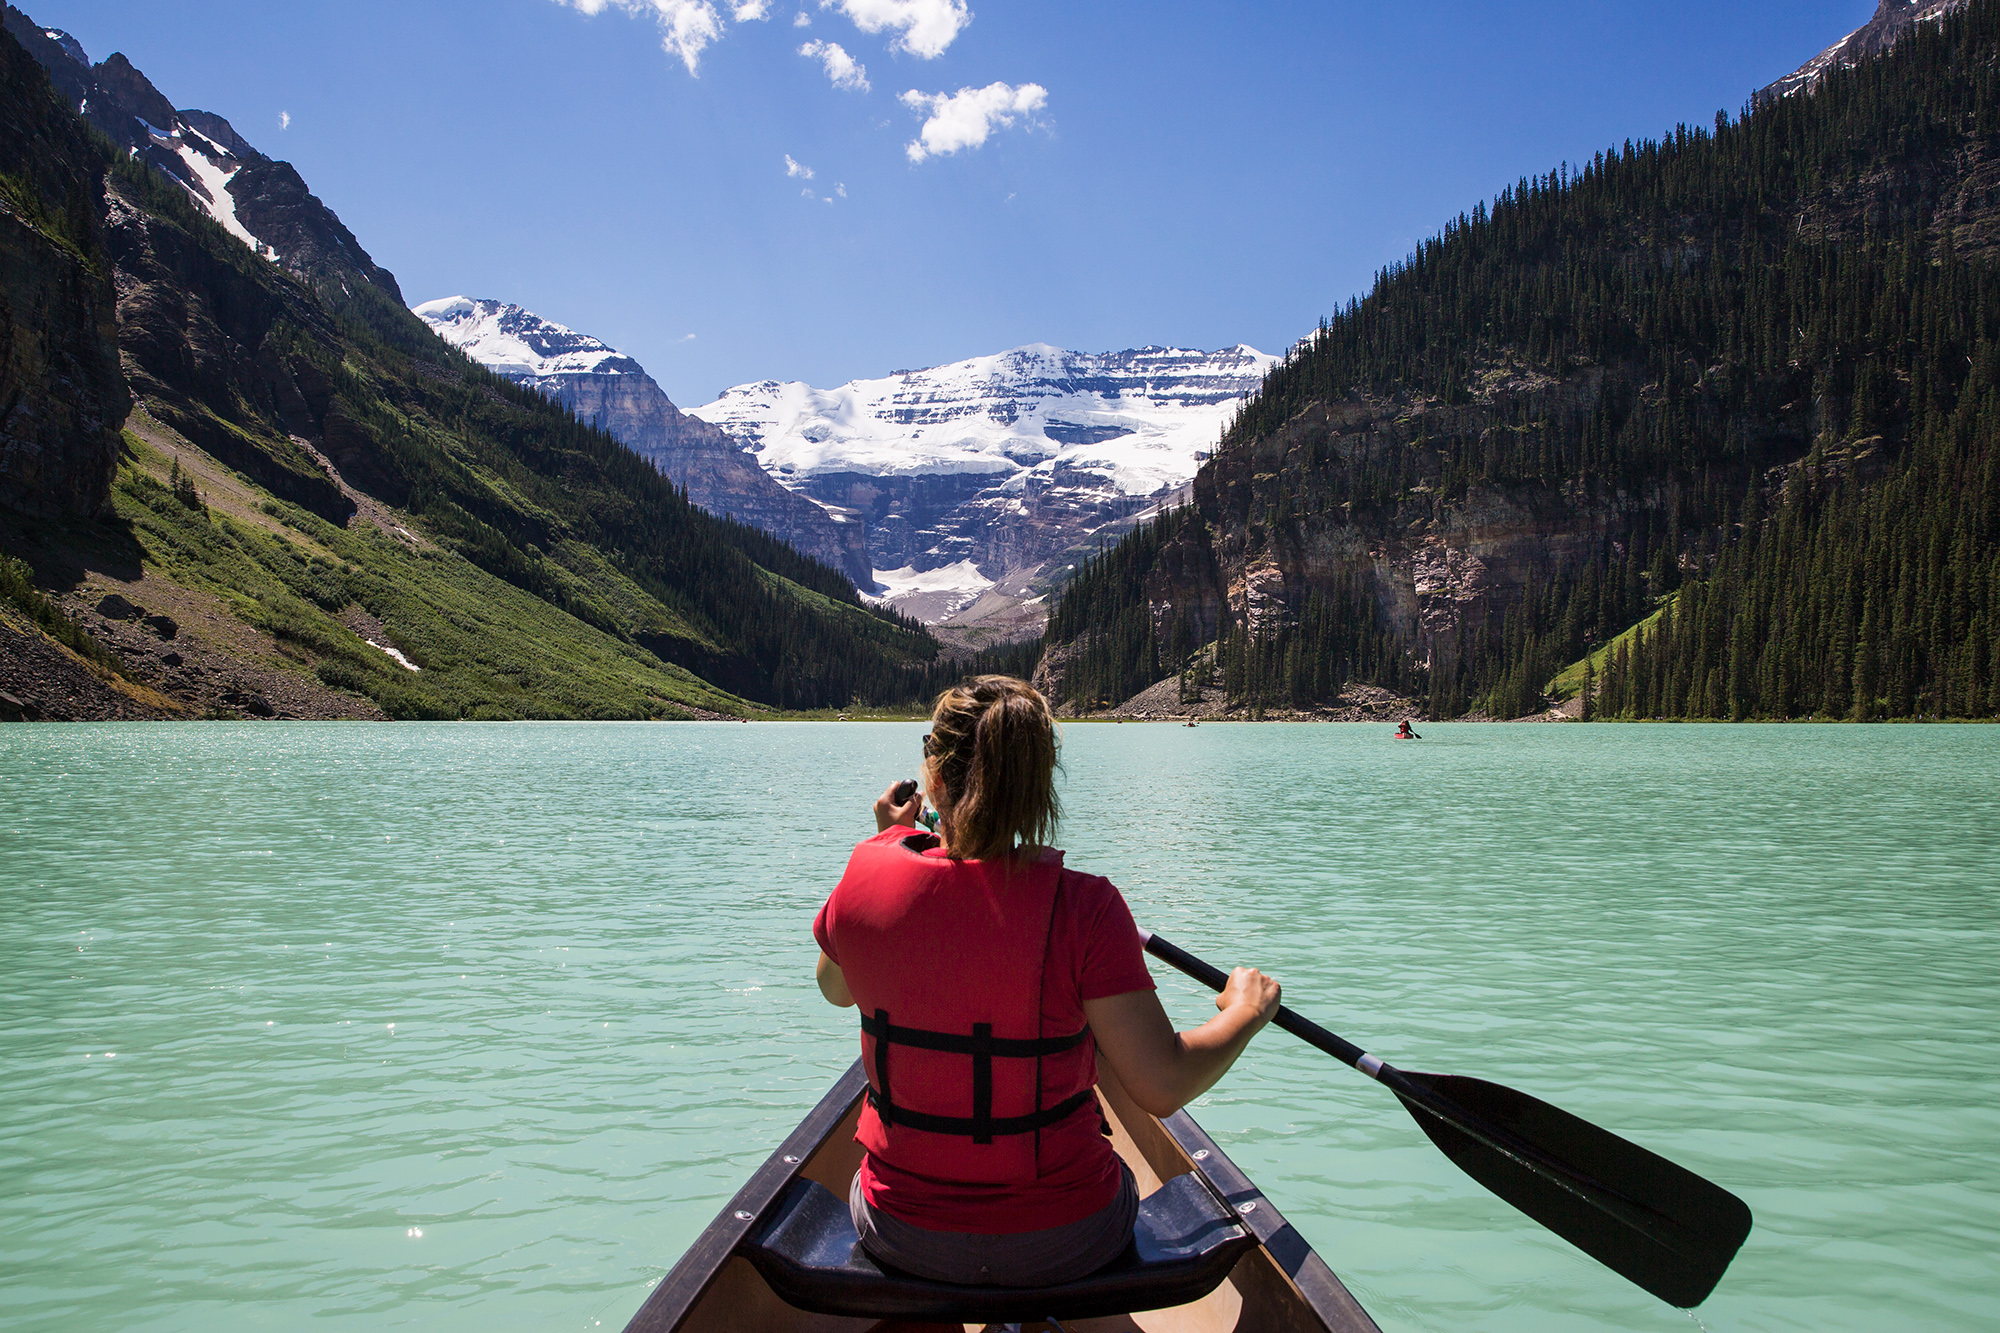 Britnee fulfilling a dream of canoeing on Lake Louise in Banff National Park.